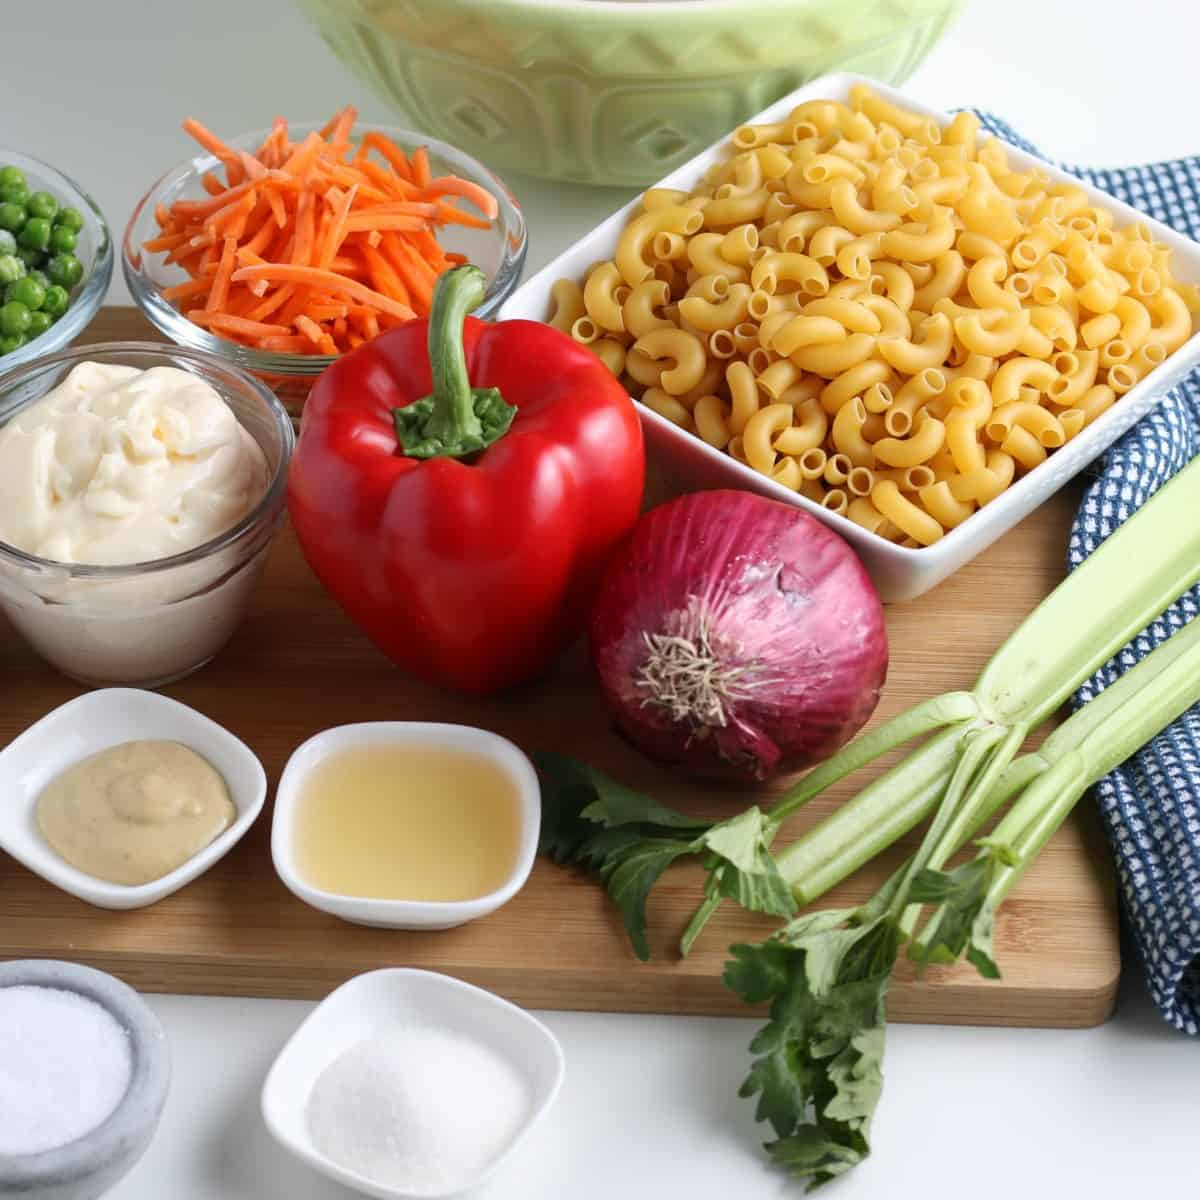 All of the ingredients are shown on a wooden cutting board before the vegetables are prepares.